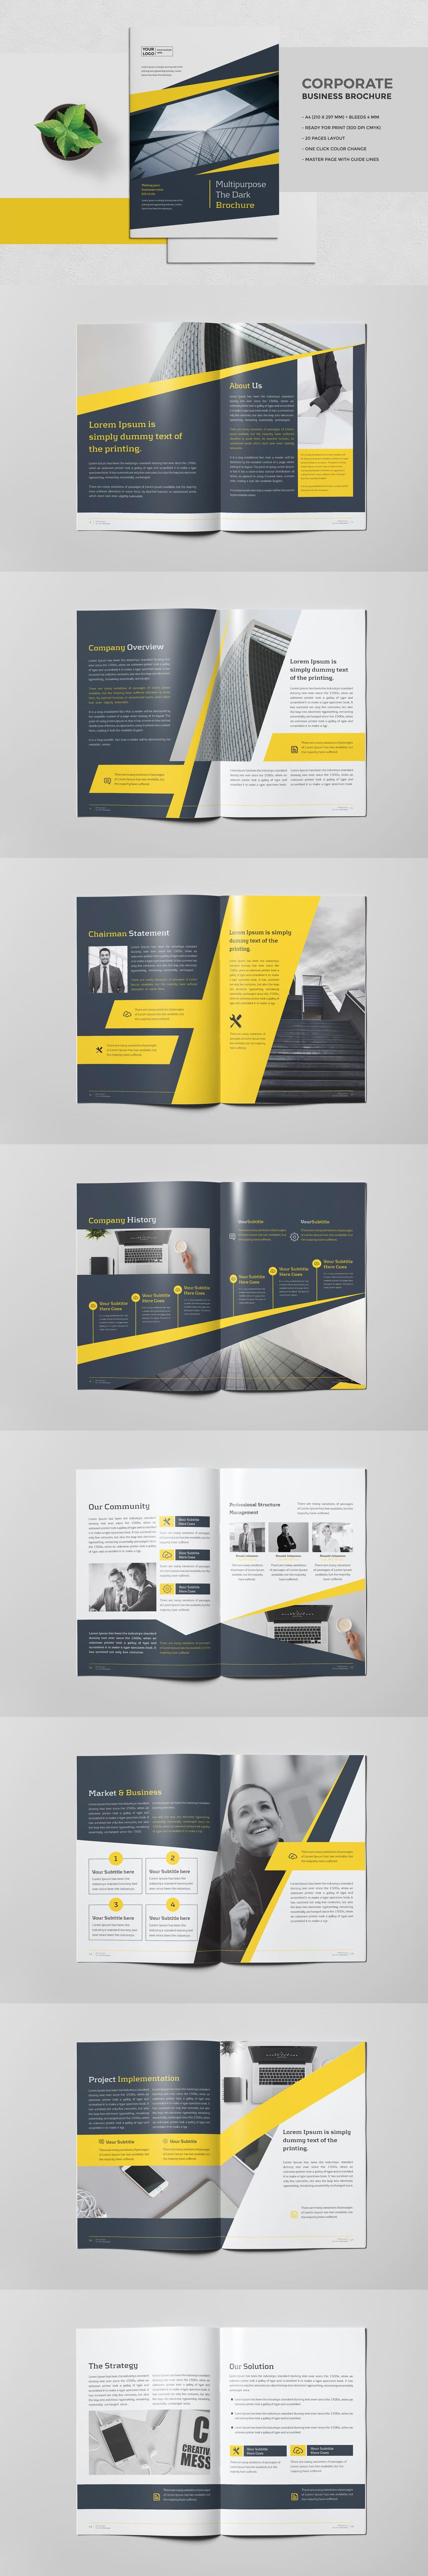 Professional, Clean and Modern Brochure Template InDesign INDD - 20 ...